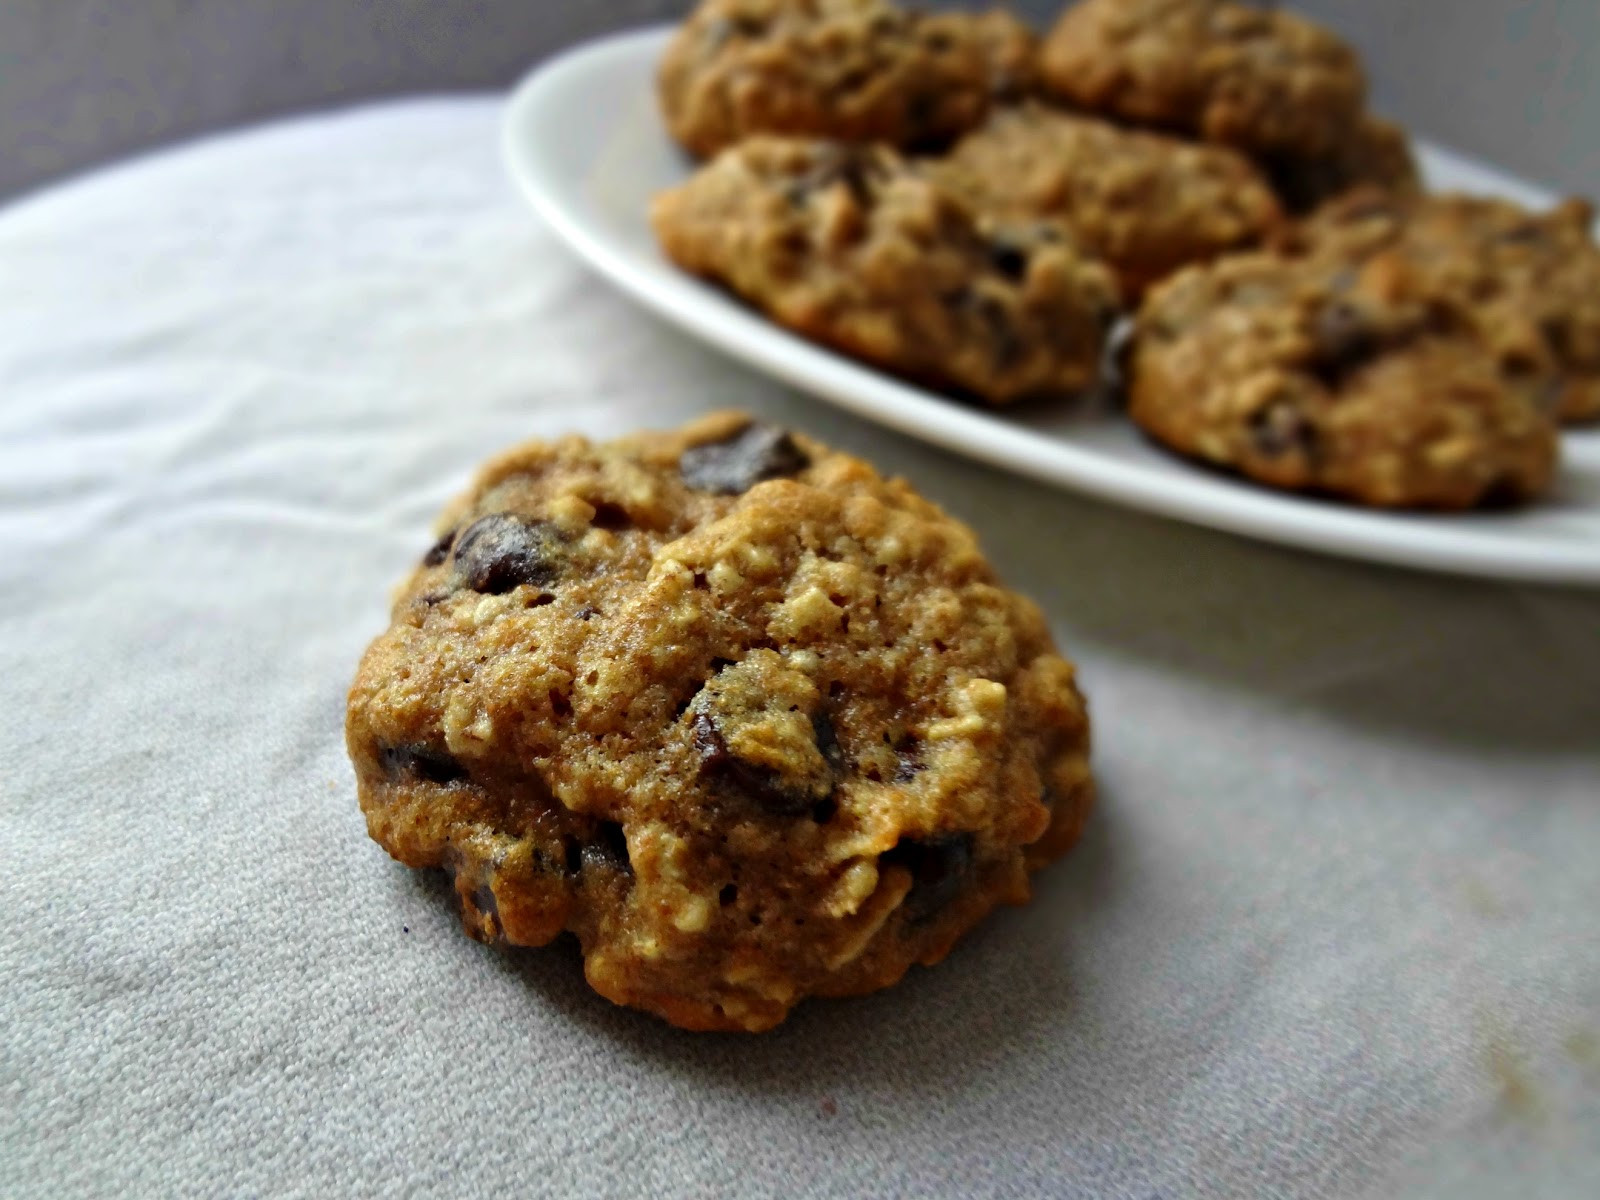 Healthy Oatmeal Chocolate Chip Cookies  The Cooking Actress Healthy Oatmeal Chocolate Chip Cookies